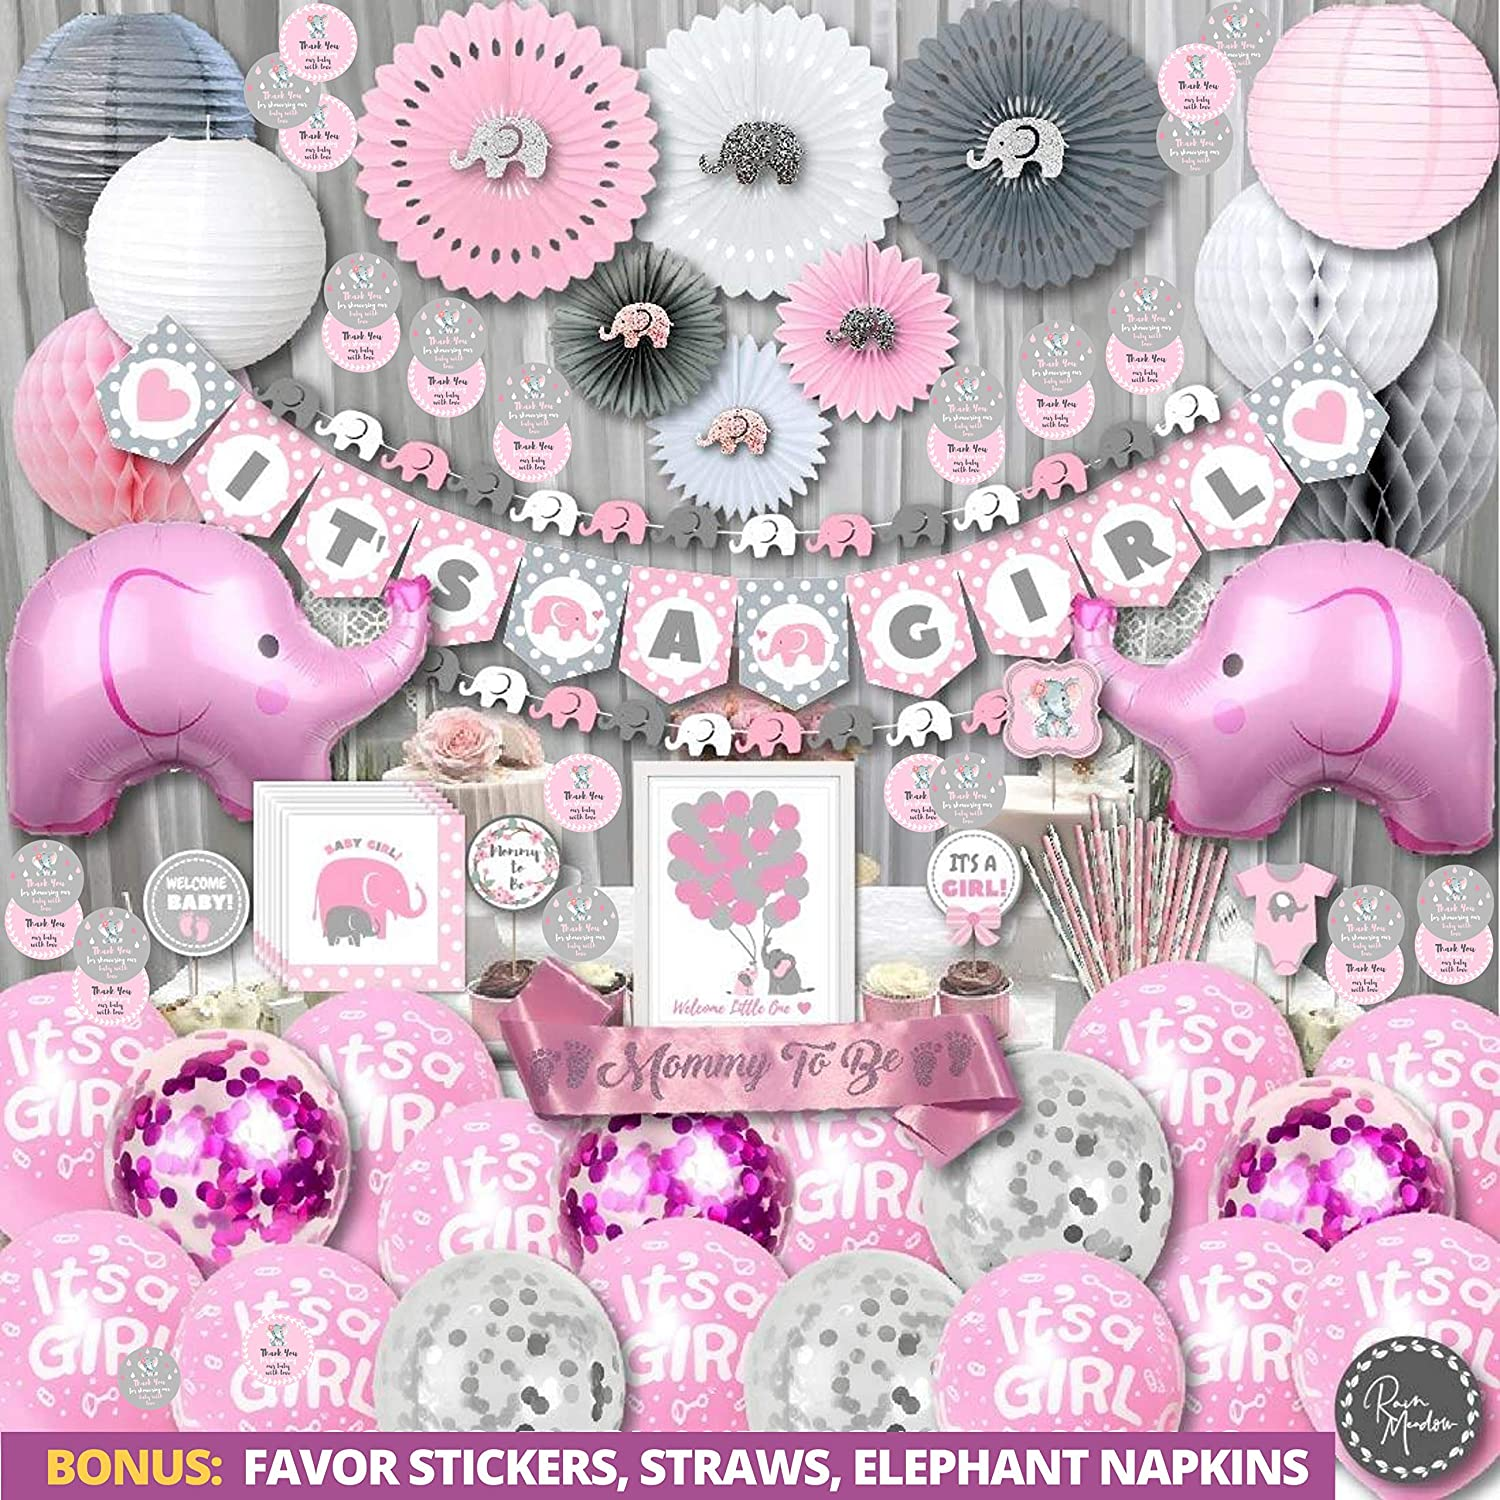 Elephant Baby Shower Decorations for Girl Jumbo Bundle | It's A Girl | Banner, Napkins, Straws, Guest Book, Paper Lanterns, Honeycomb Balls, Fans, Cake Toppers, Sash, Balloons, Games, Pink Grey White